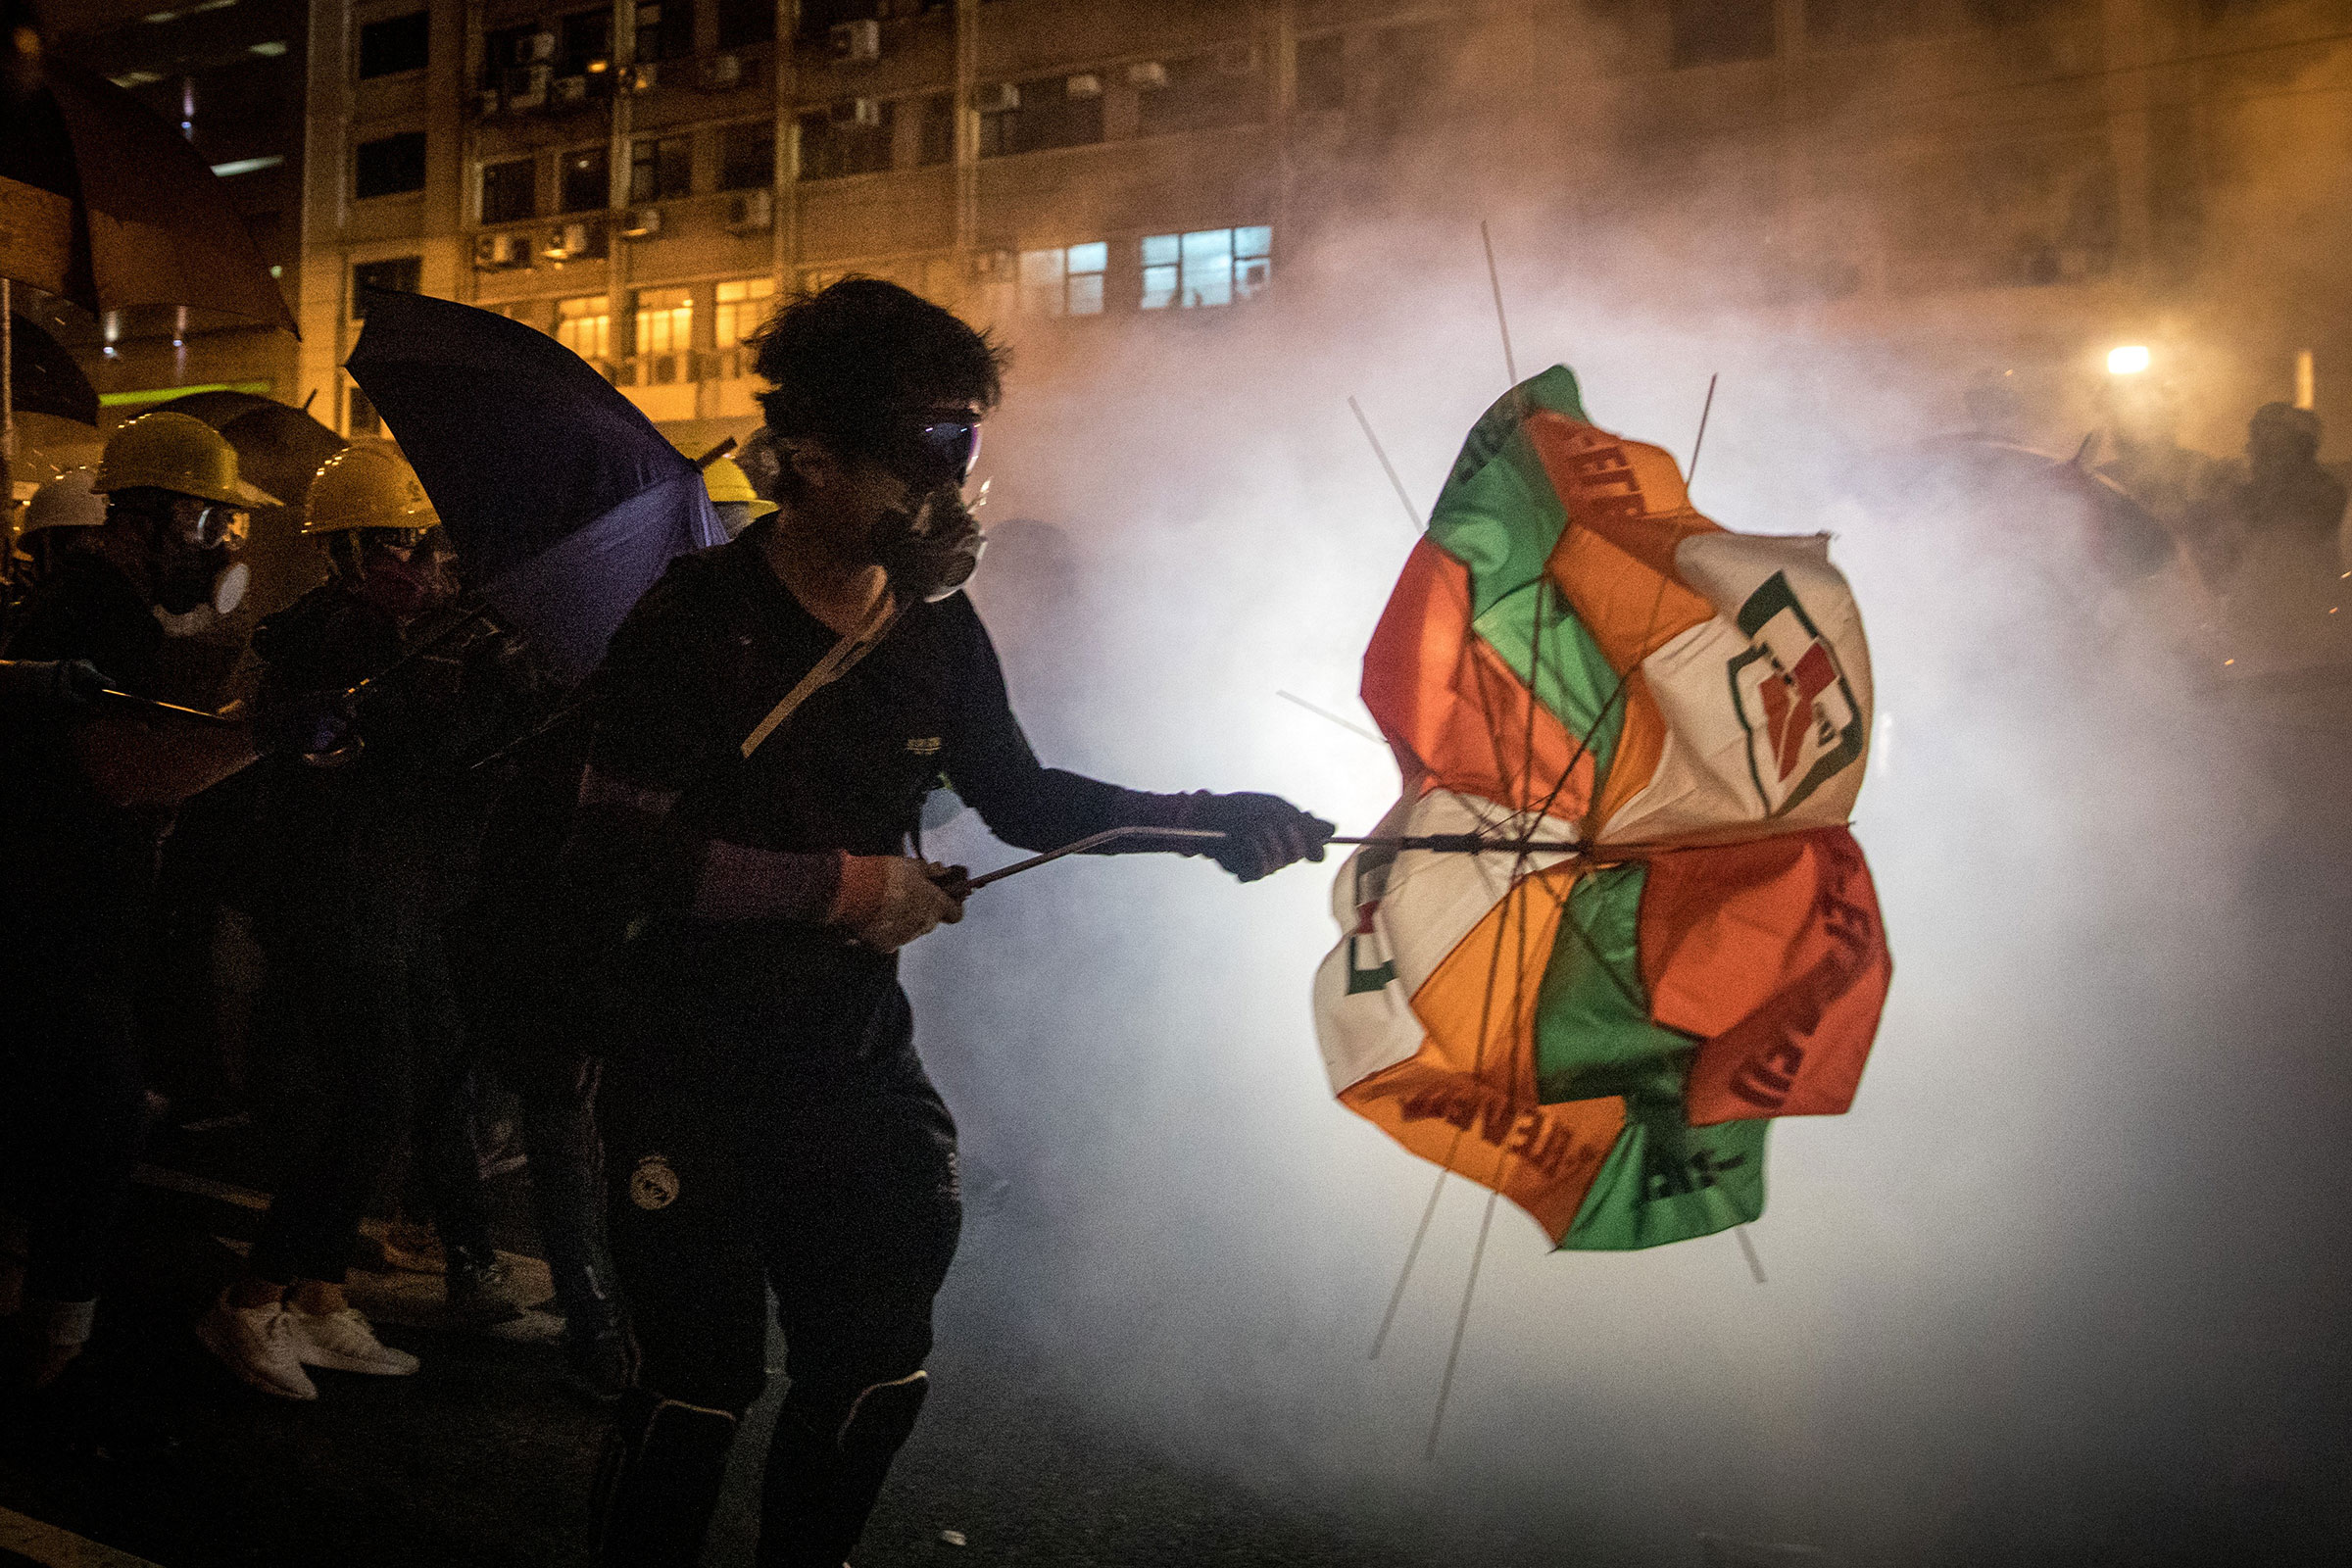 Protesters clash with police amid tear gas after taking part in an anti-extradition bill march on July 21 in Hong Kong.